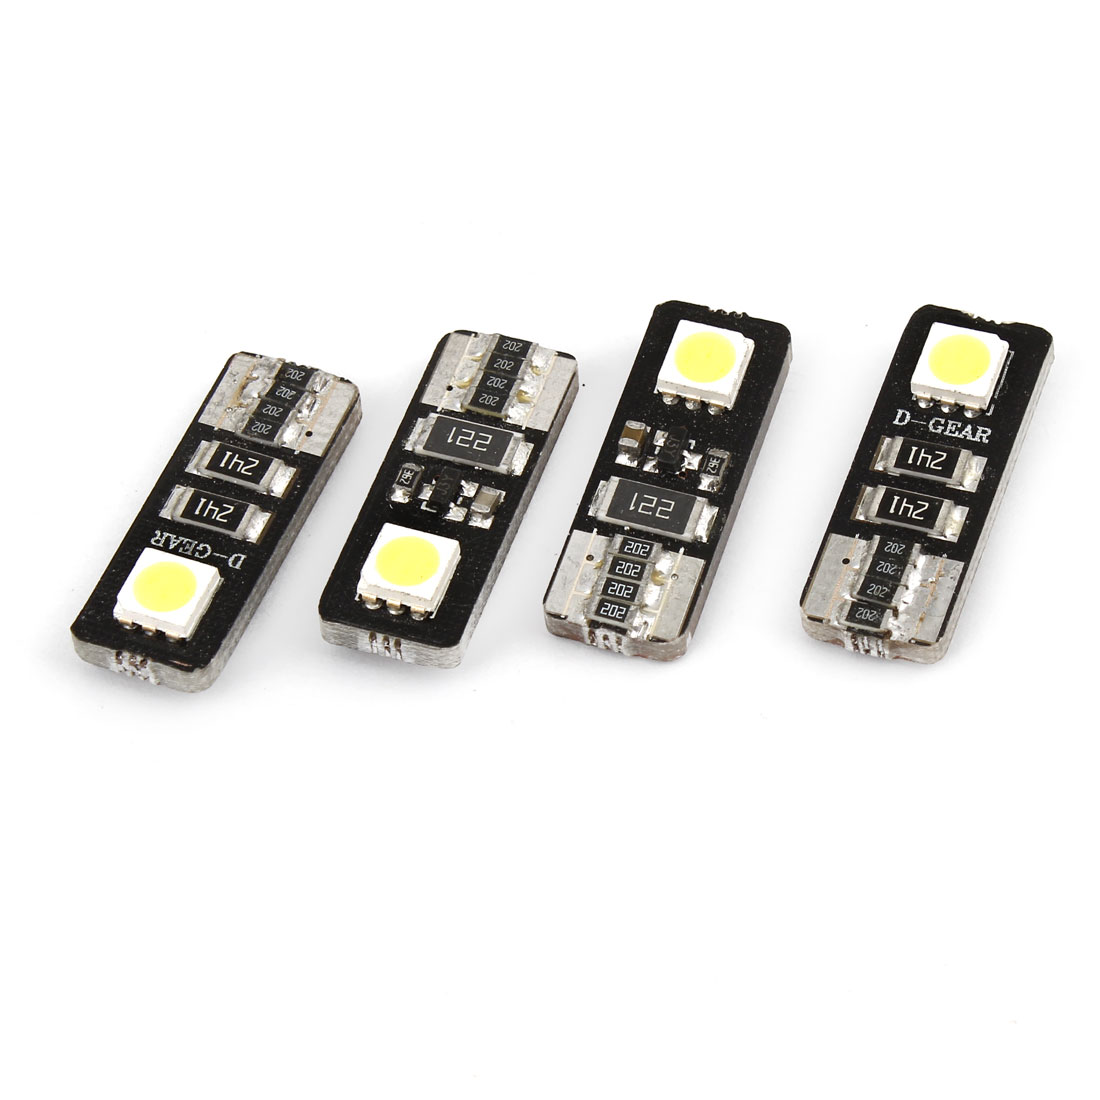 4 Pcs White 5050 2 SMD LEDs T10 Wedge Car Dash Light Bulb Lamp 12V Internal